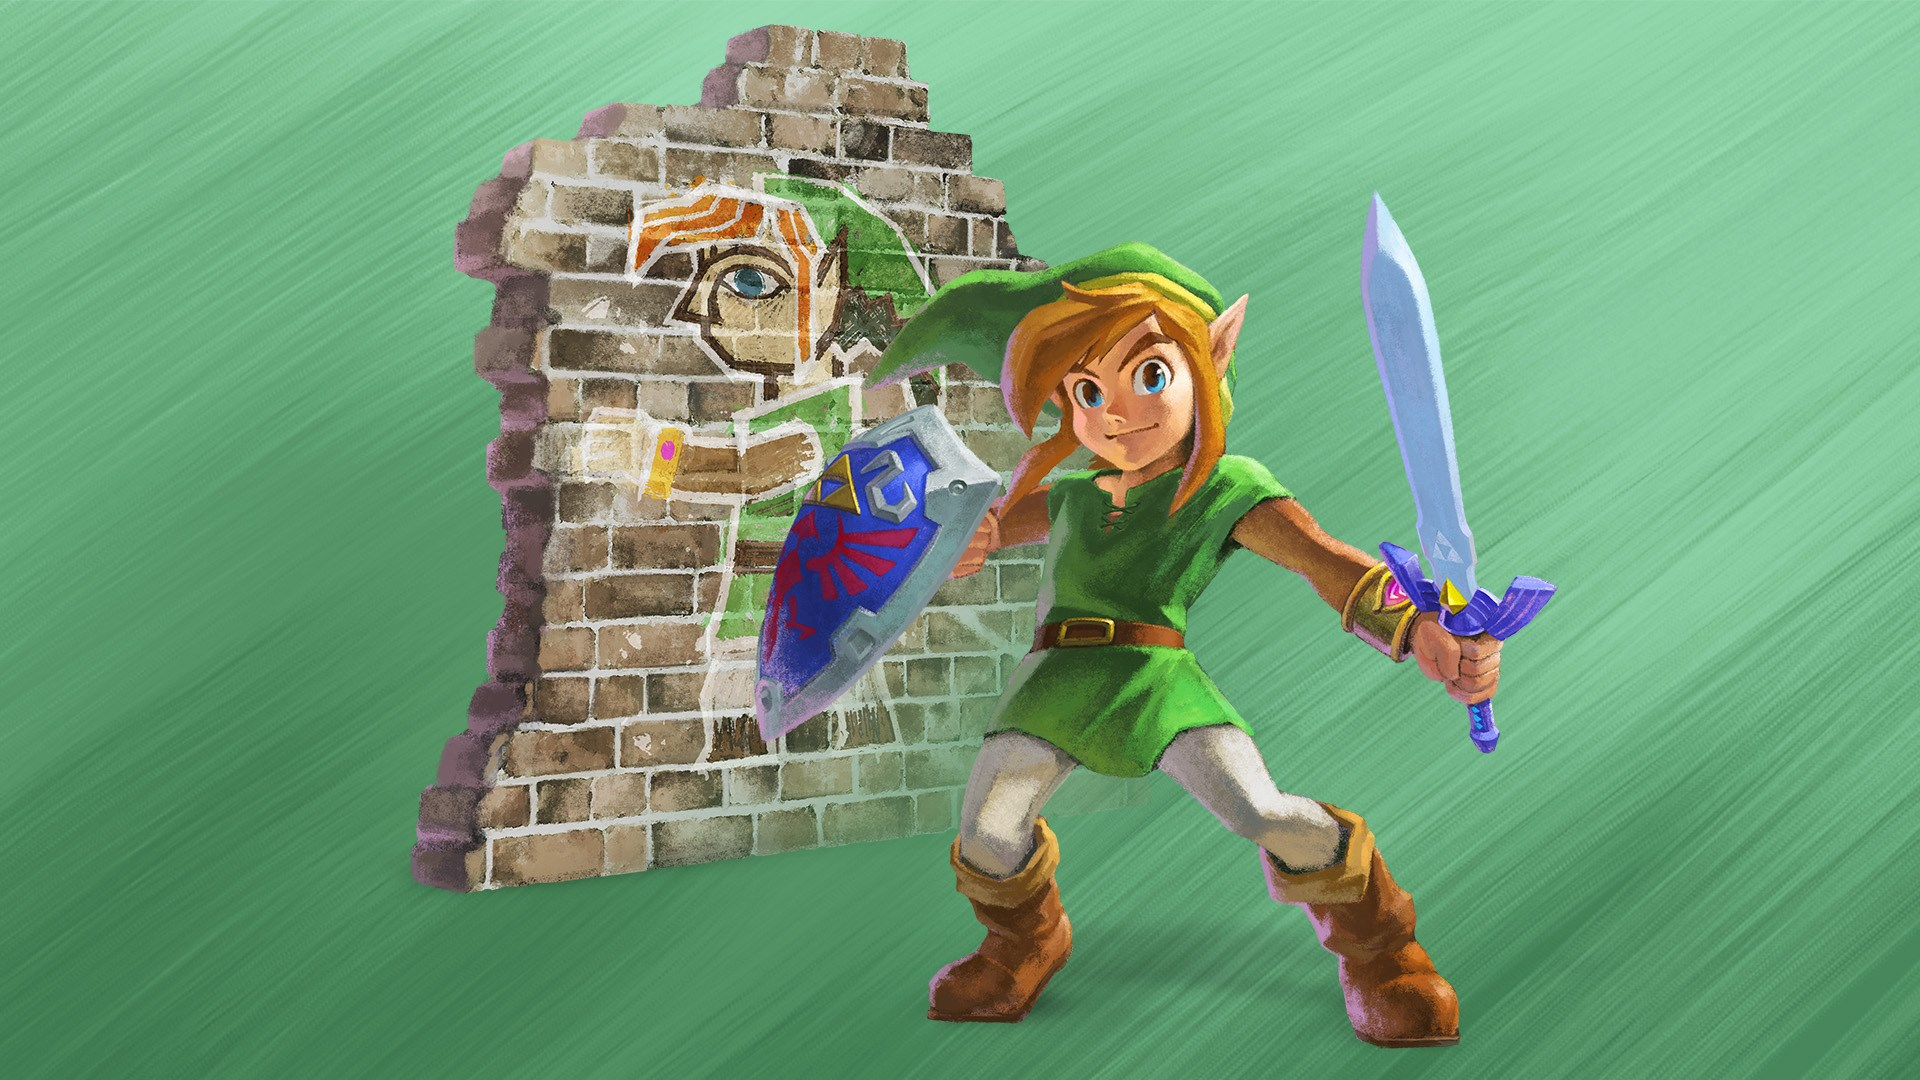 Couple Live Wallpaper Iphone X Legend Of Zelda Wallpaper Hd Downloadwallpaper Org